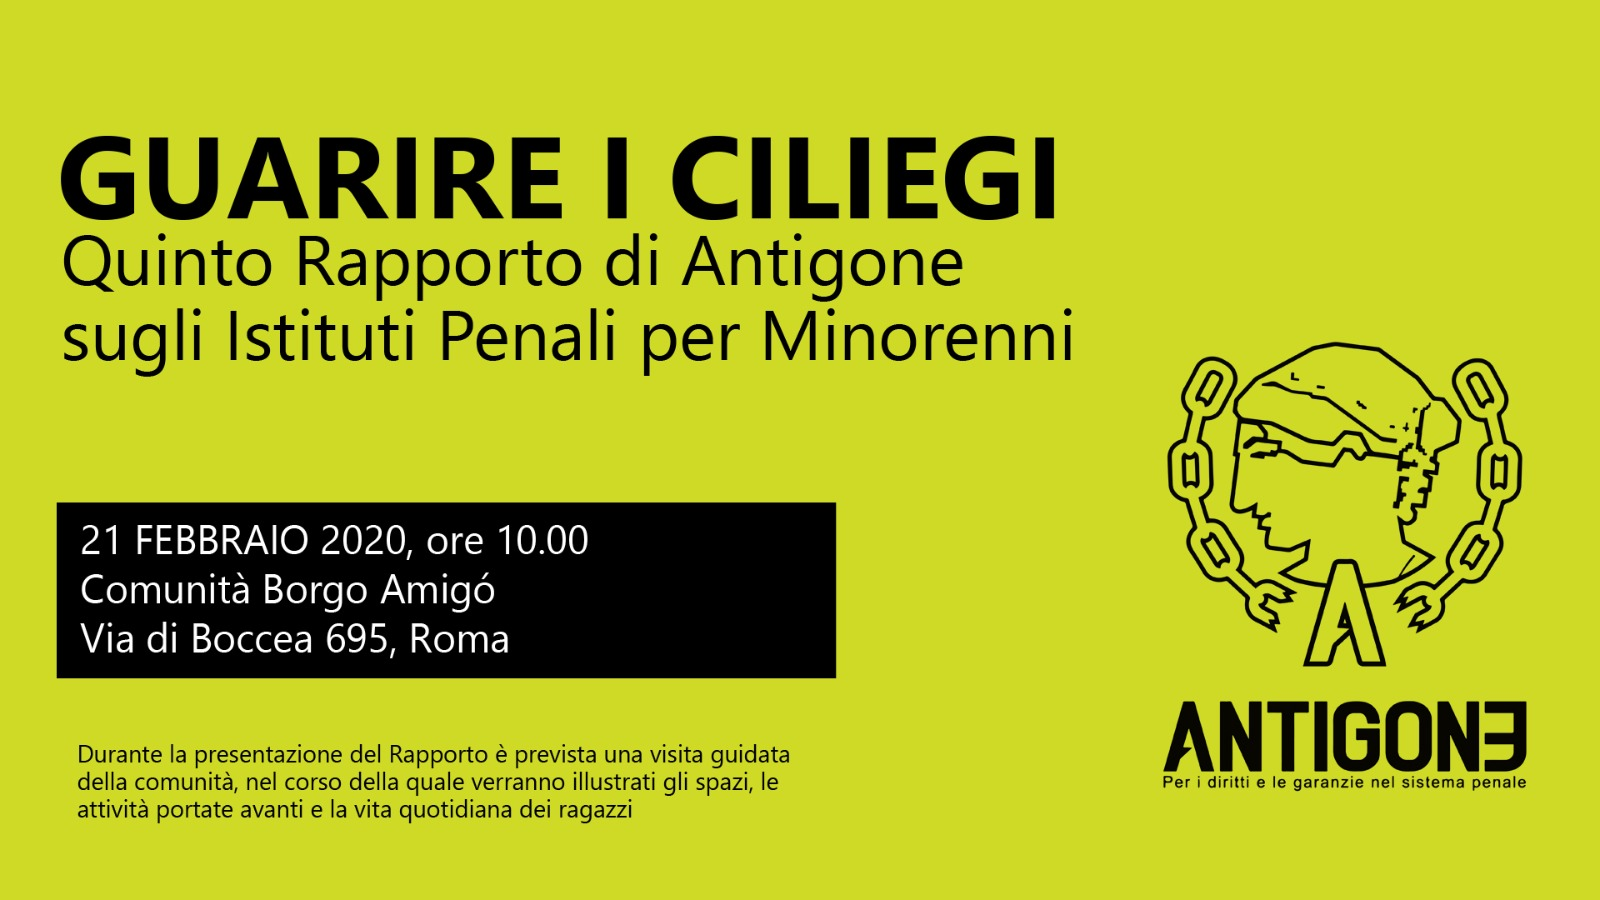 Guarire i ciliegi Antigone